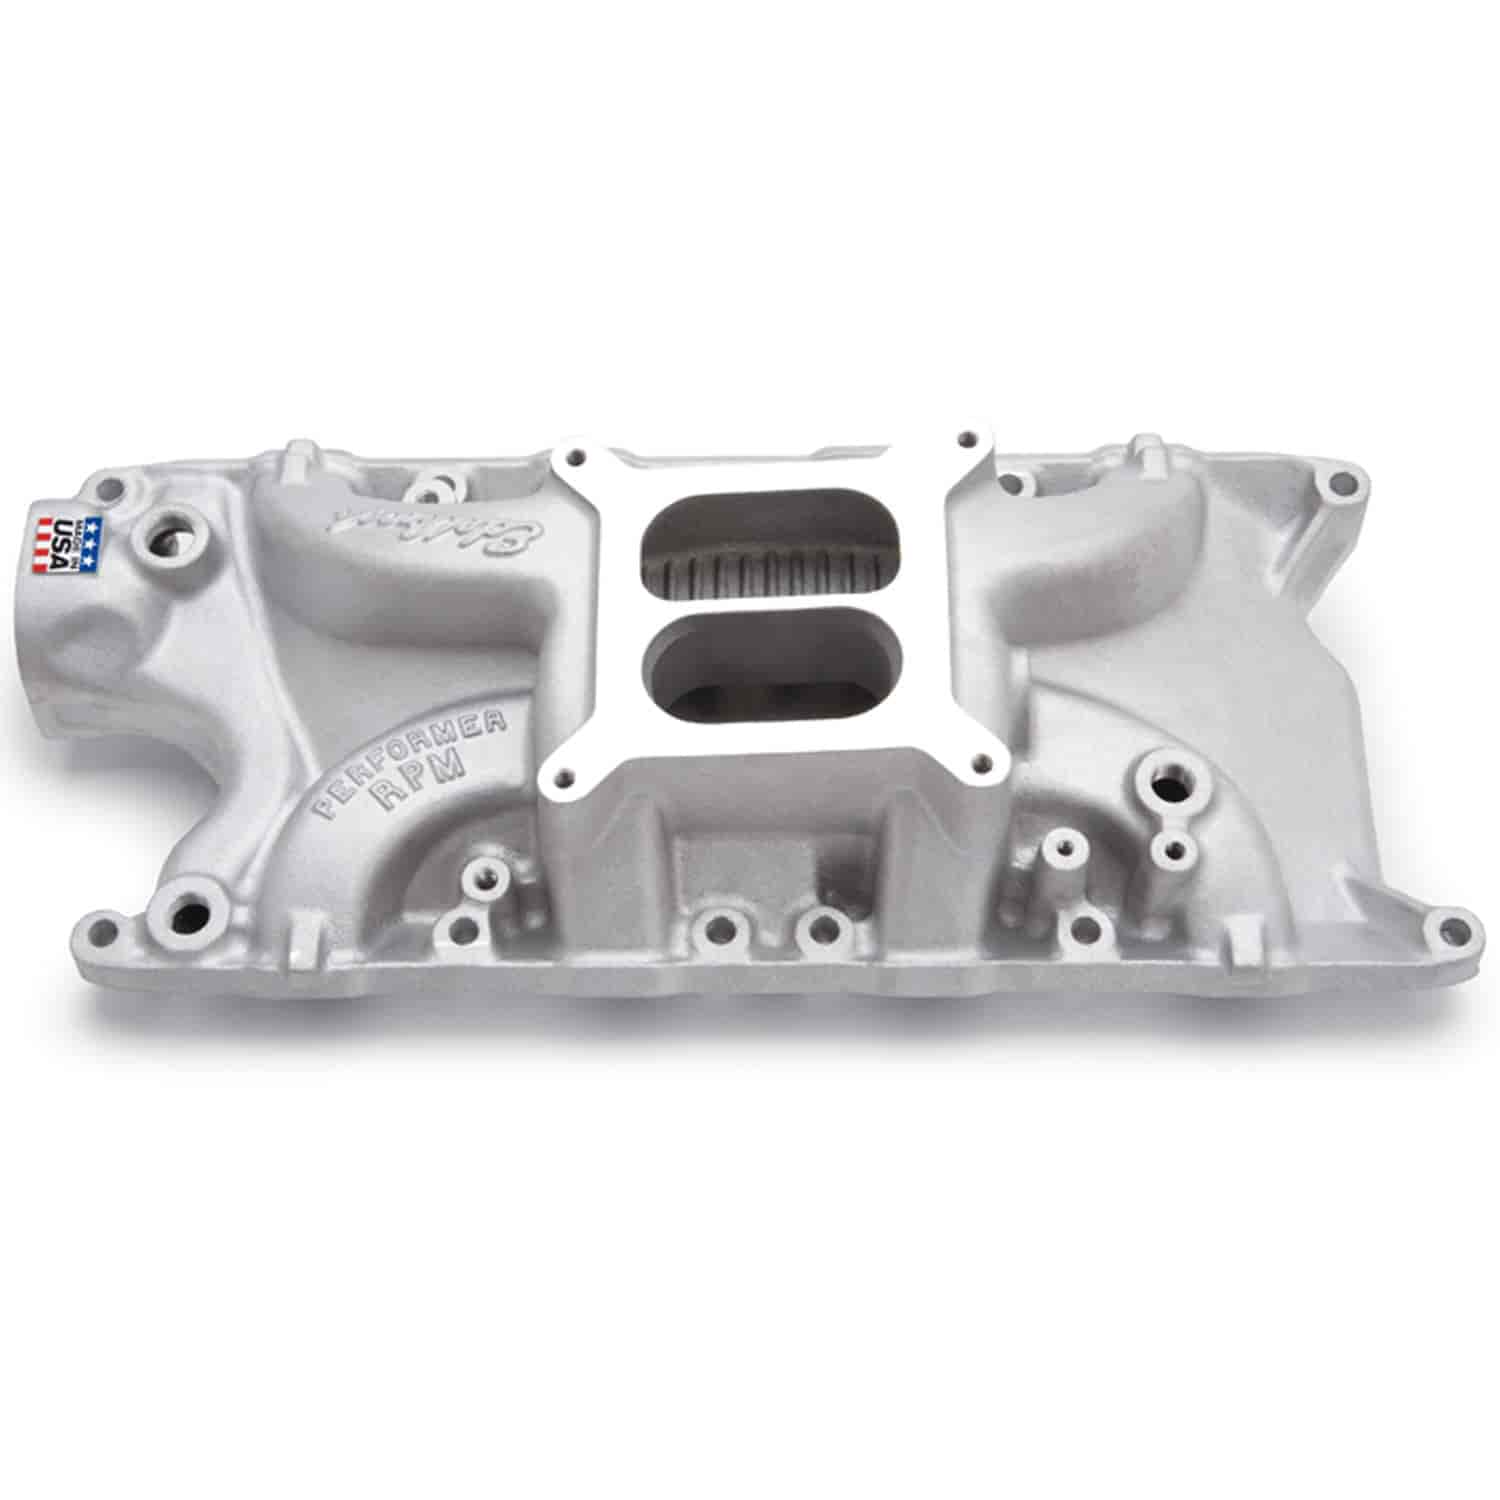 hight resolution of edelbrock 7121 performer rpm 302 intake manifold sb ford 260 302ci1988 f350 5 8l intake manifold